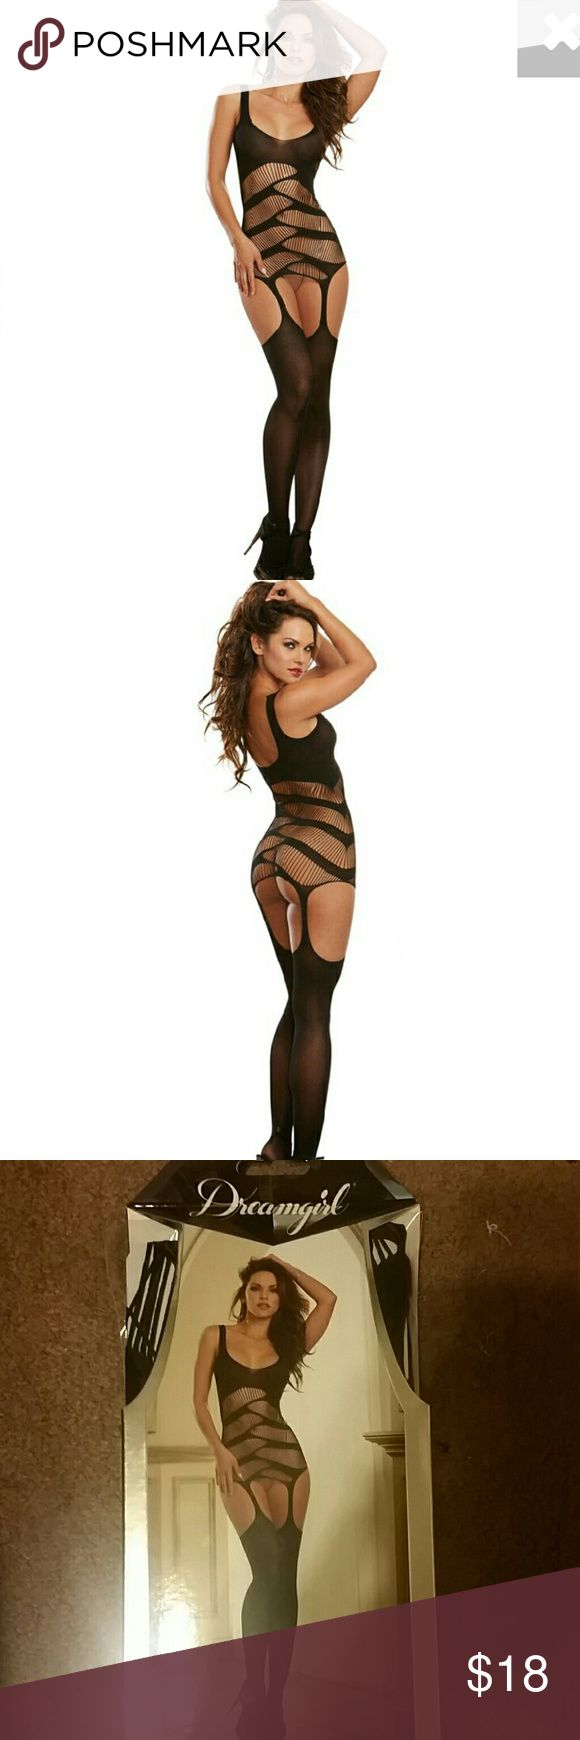 Dreamgirl Sexy Bodydress with Garters *NEW* Black semi opaque garter dress with strappy cut out details, attached garters and matching thigh high Stockings (g-string not oncluded) brand new in box. One size fits most. Dreamgirl  Intimates & Sleepwear Shapewear